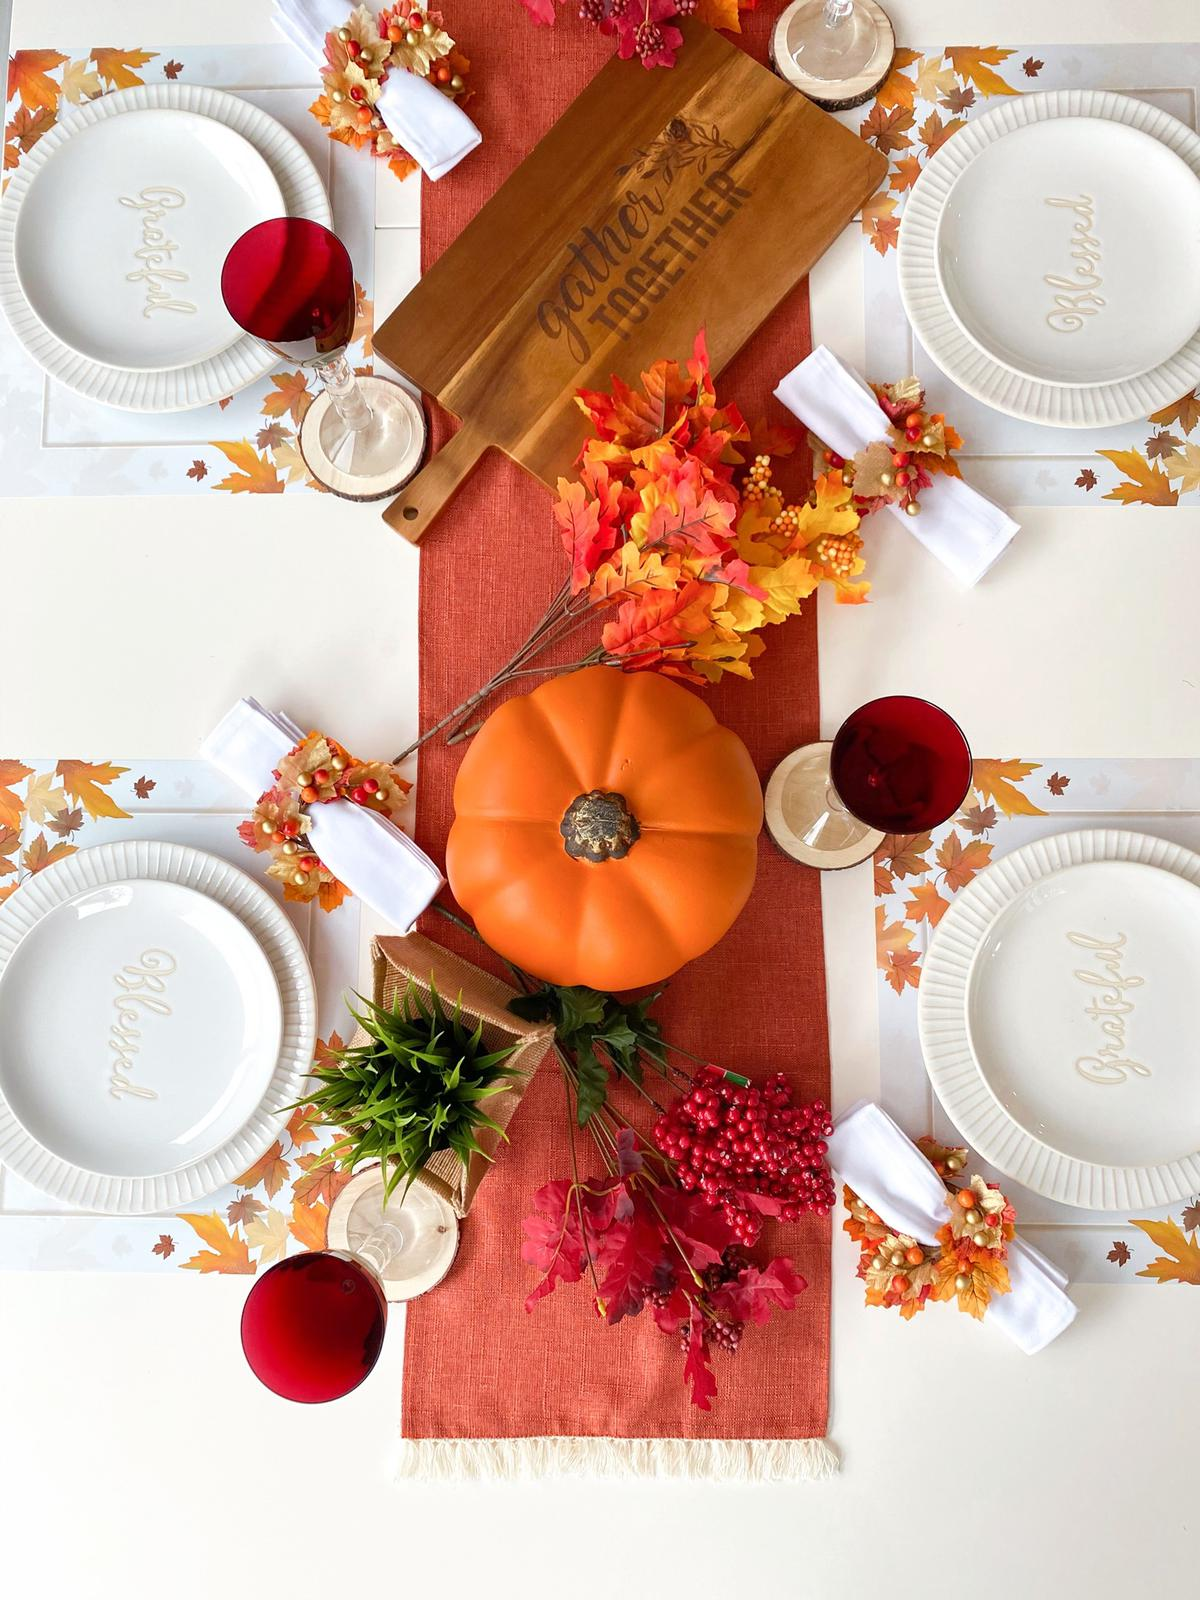 Set Up Your Table For Thanksgiving!